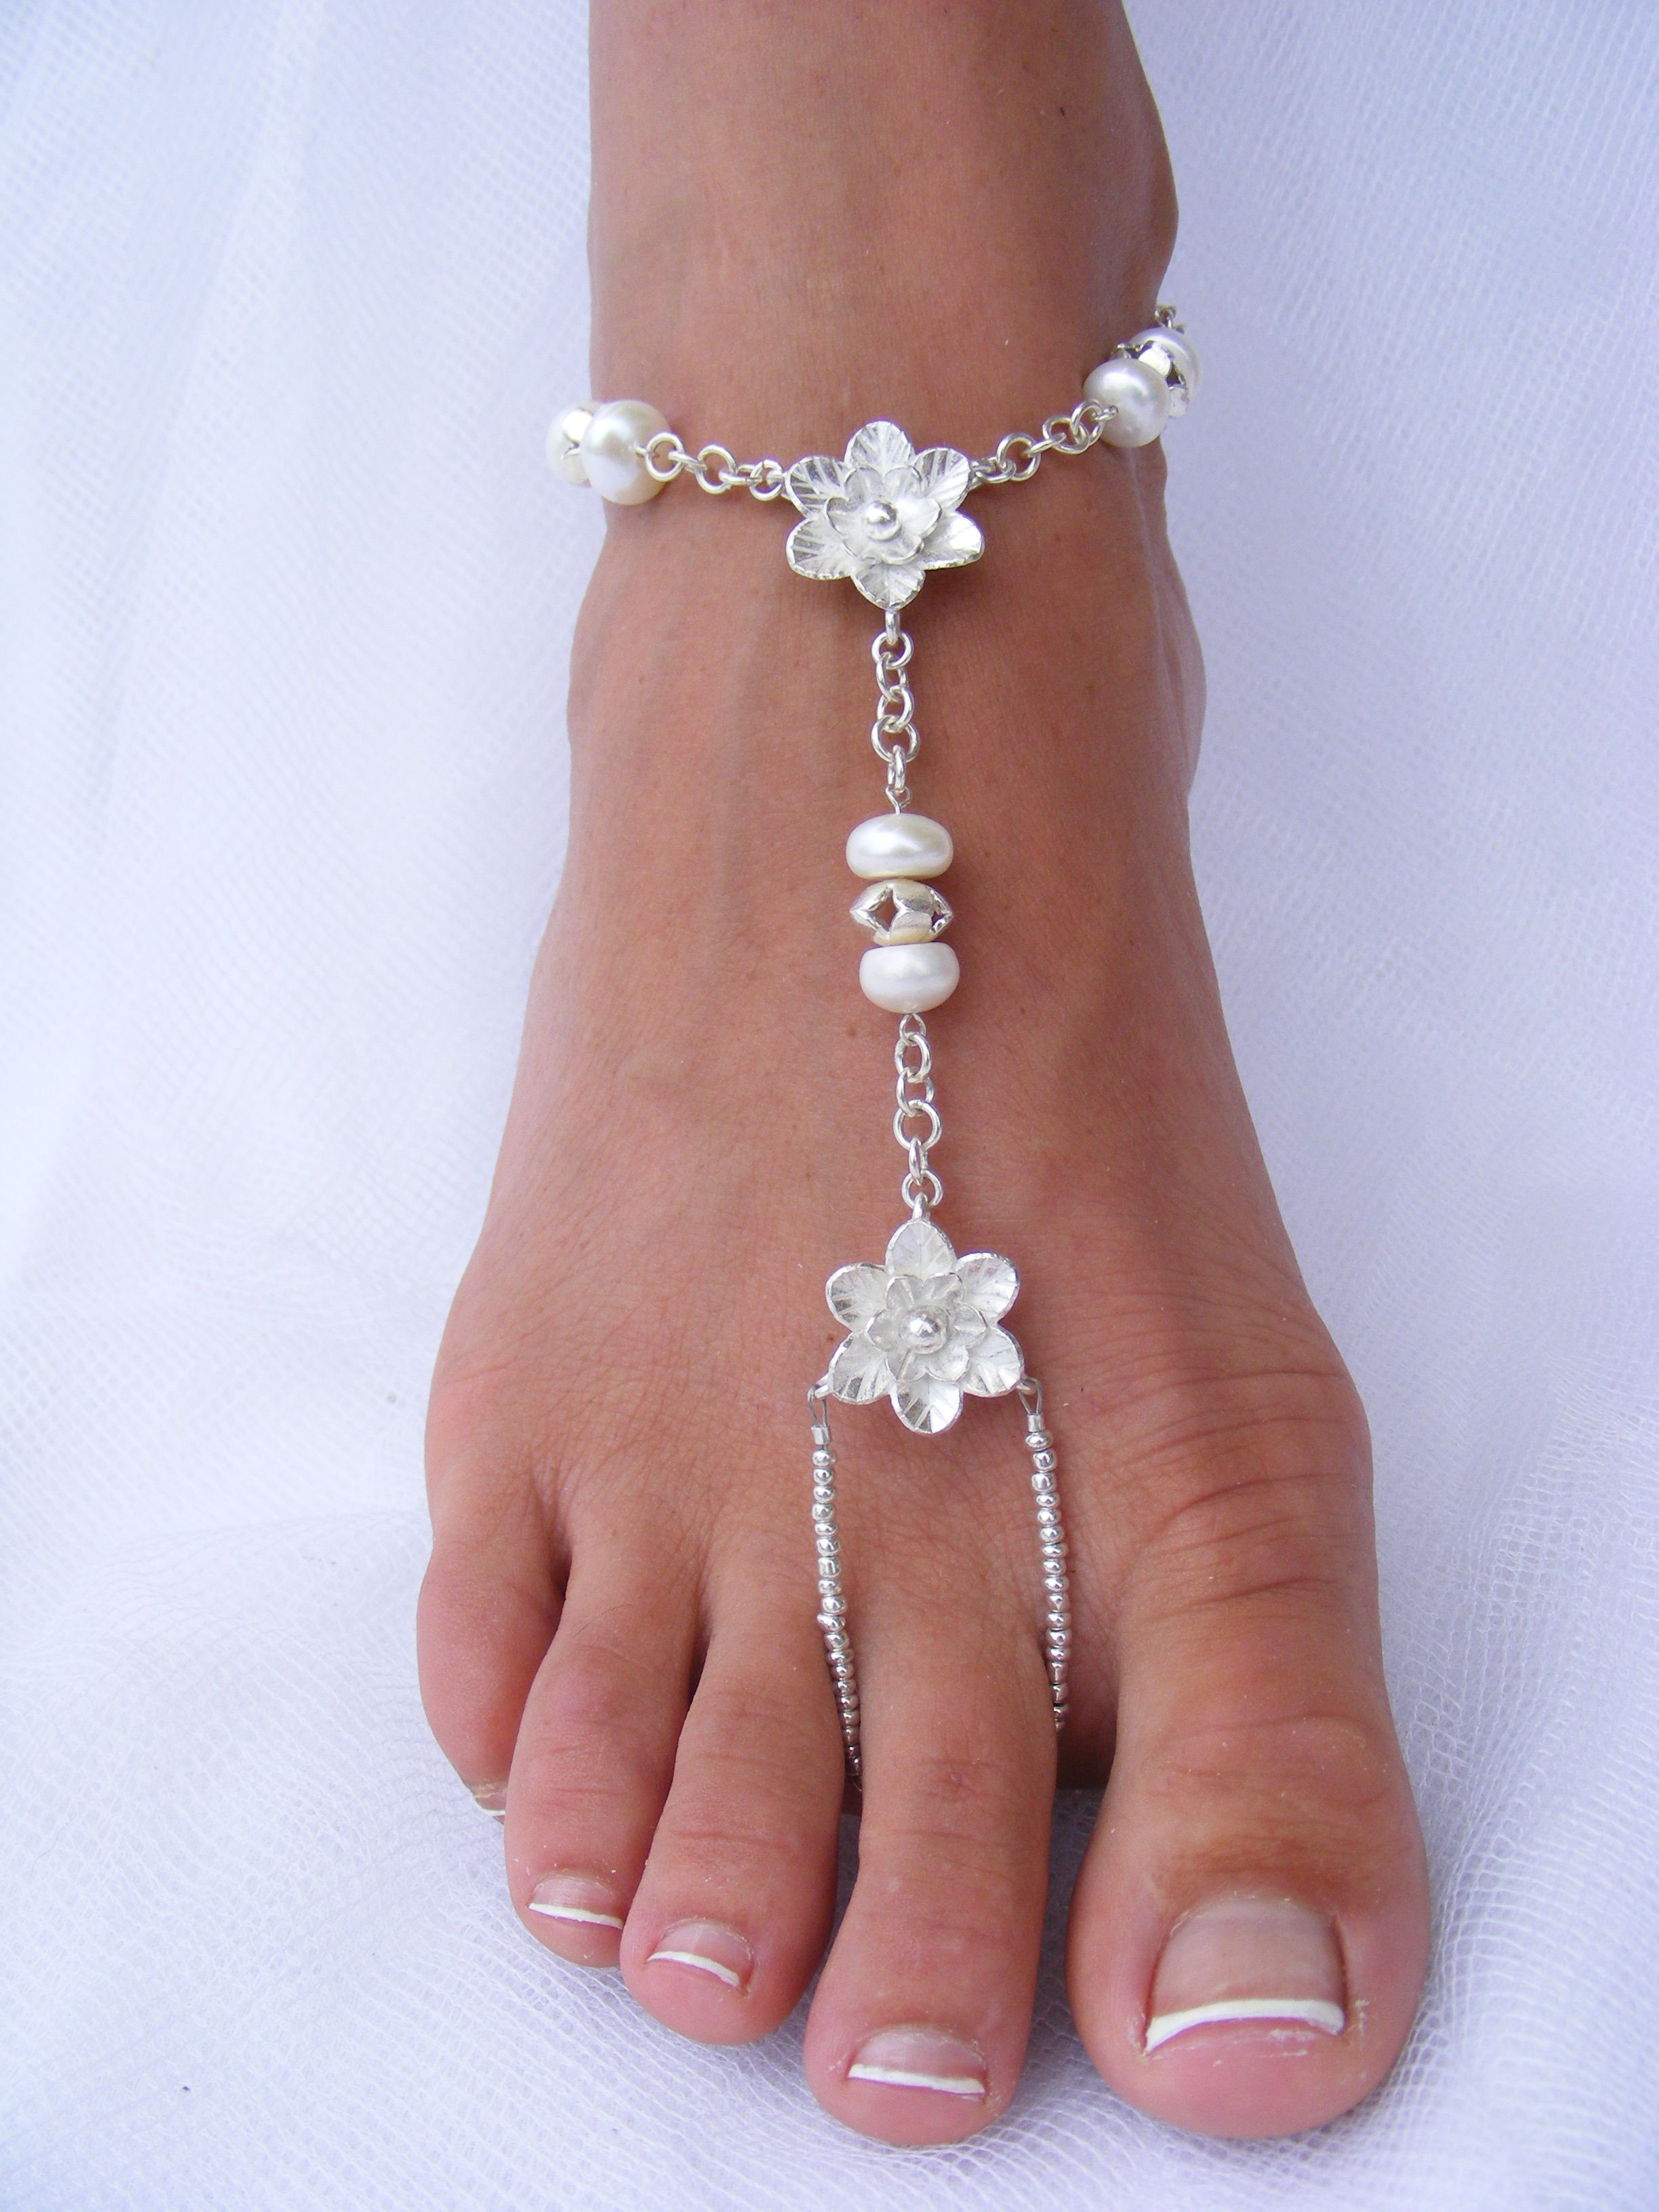 sandals bottomless beaded foot black gothic anklet wedding beach footless jewelry sandal barefoot soleless pin